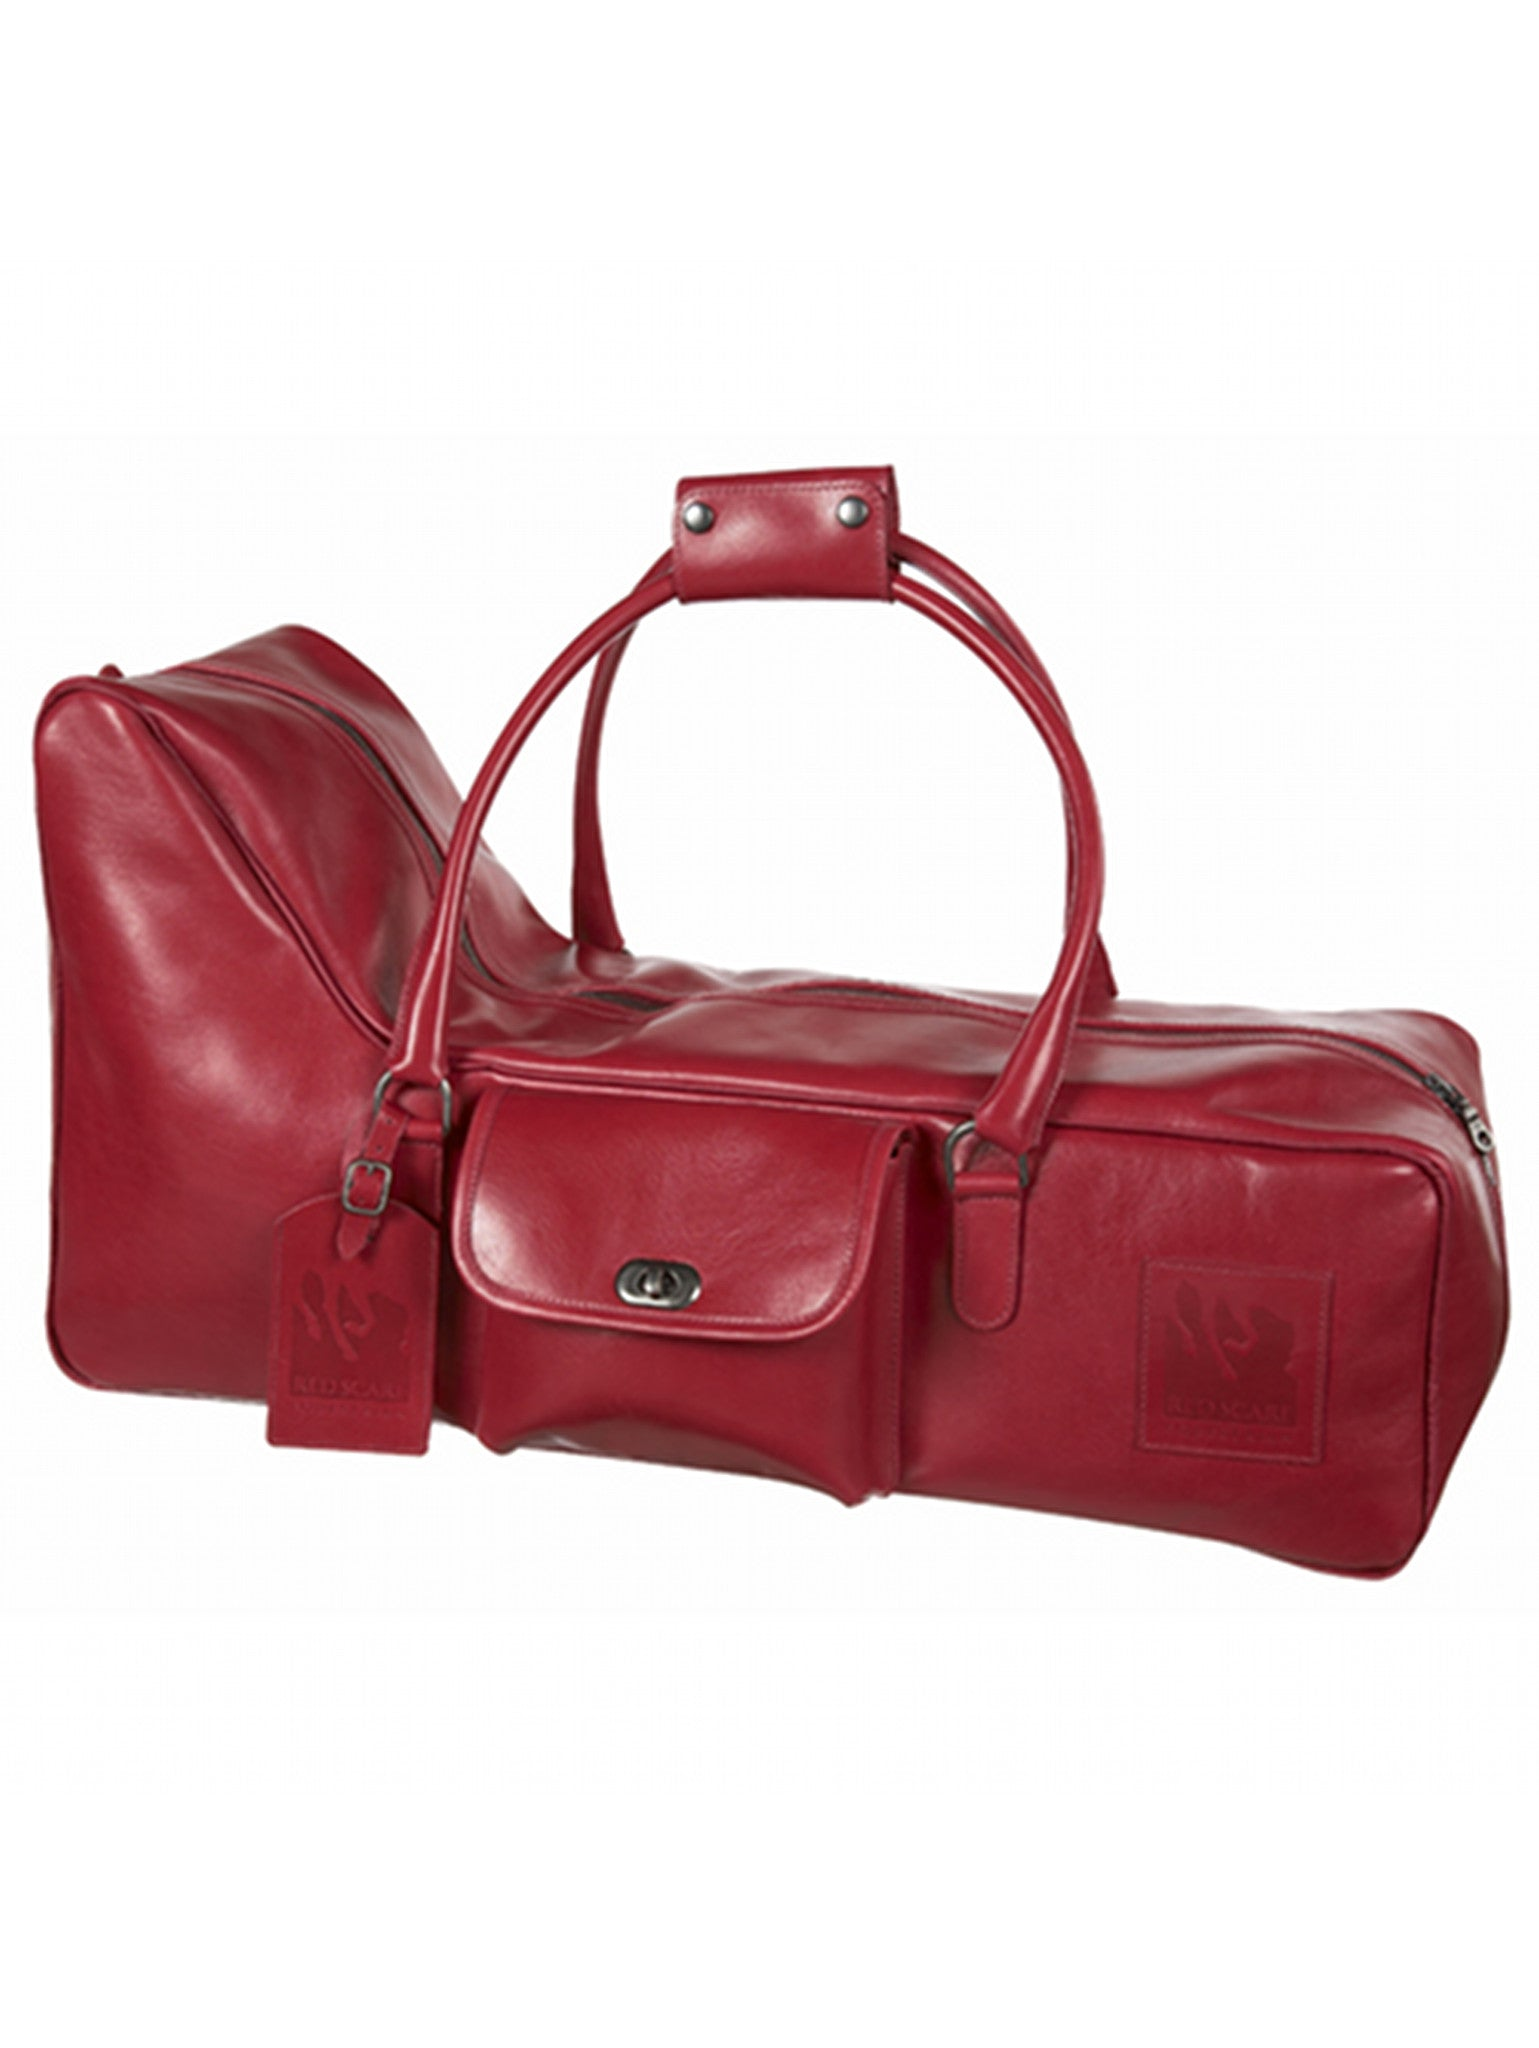 Equestrian Boot Bag Cherry Red for Tall Riding Boots - Buy Online Red Scarf Equestrian Canada